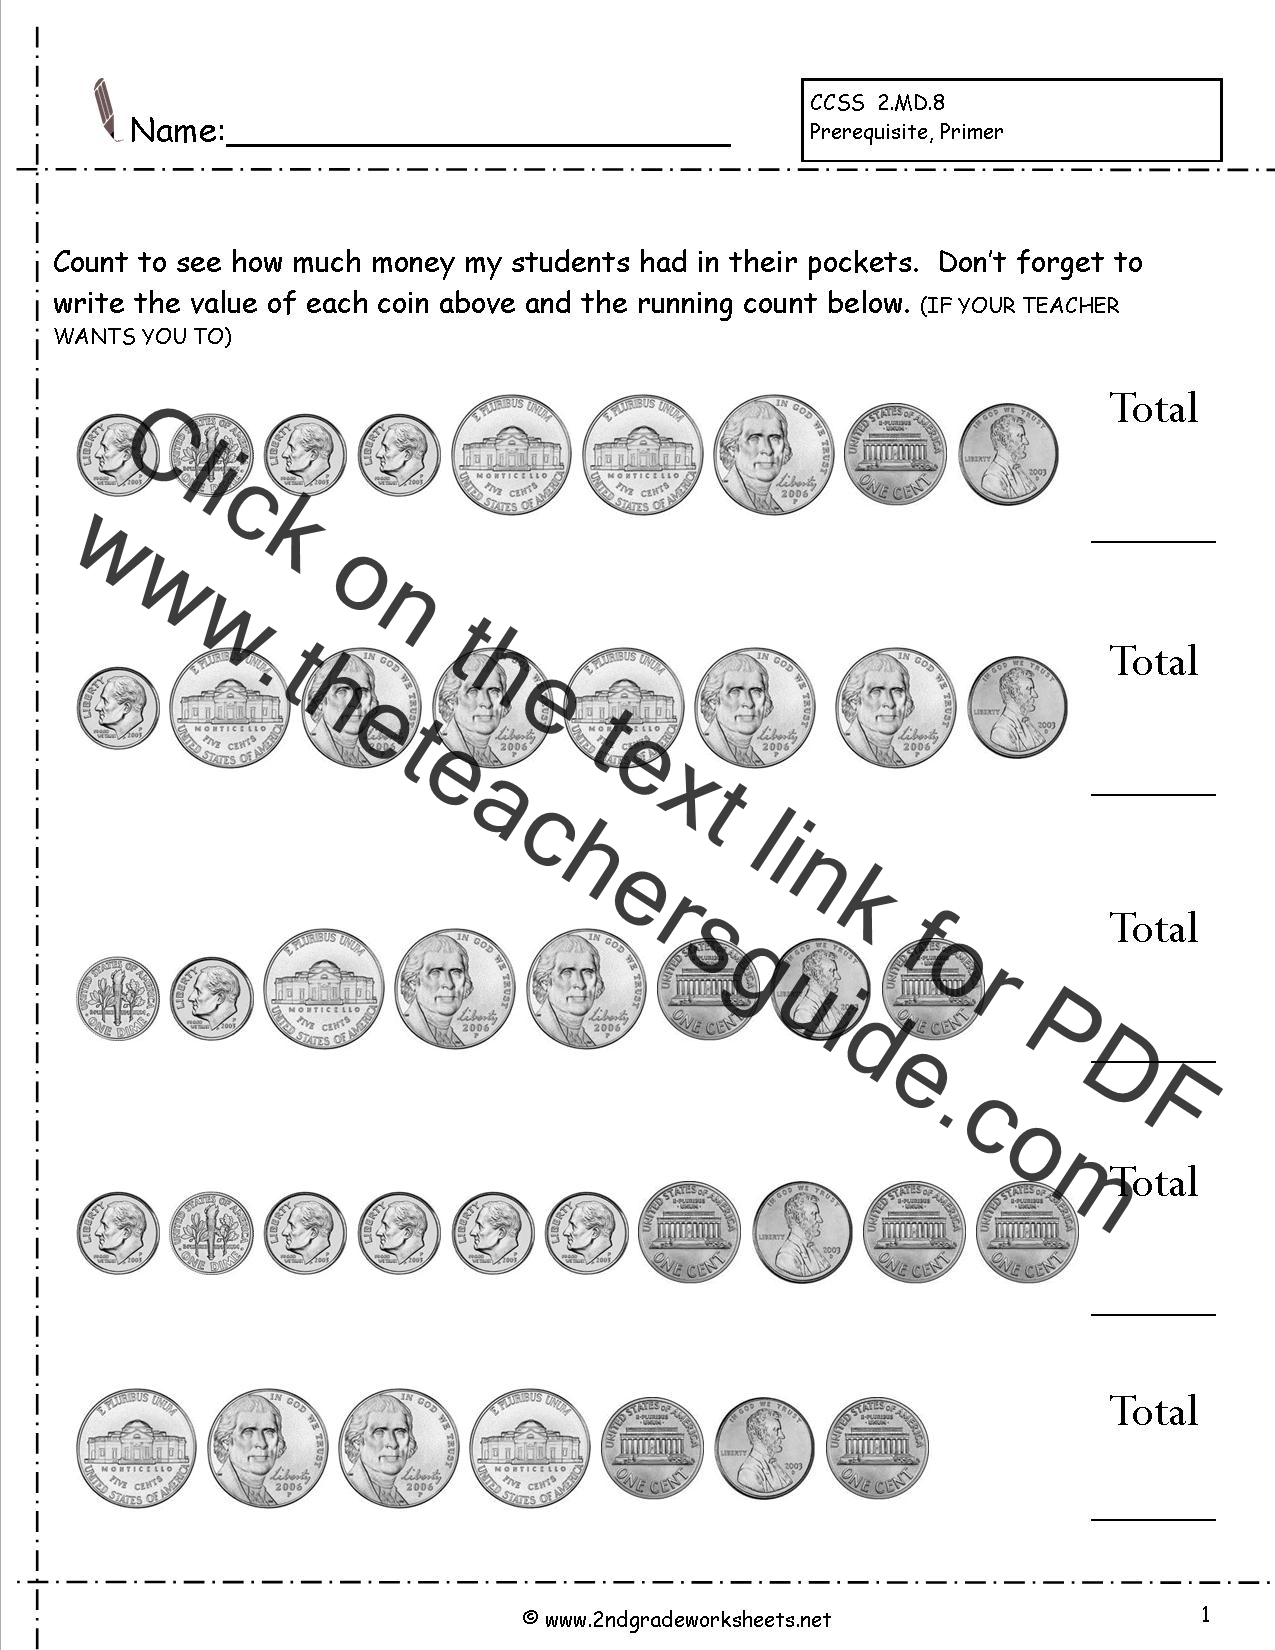 photo regarding Printable Math Worksheets for 2nd Graders titled Absolutely free Math Worksheets and Printouts